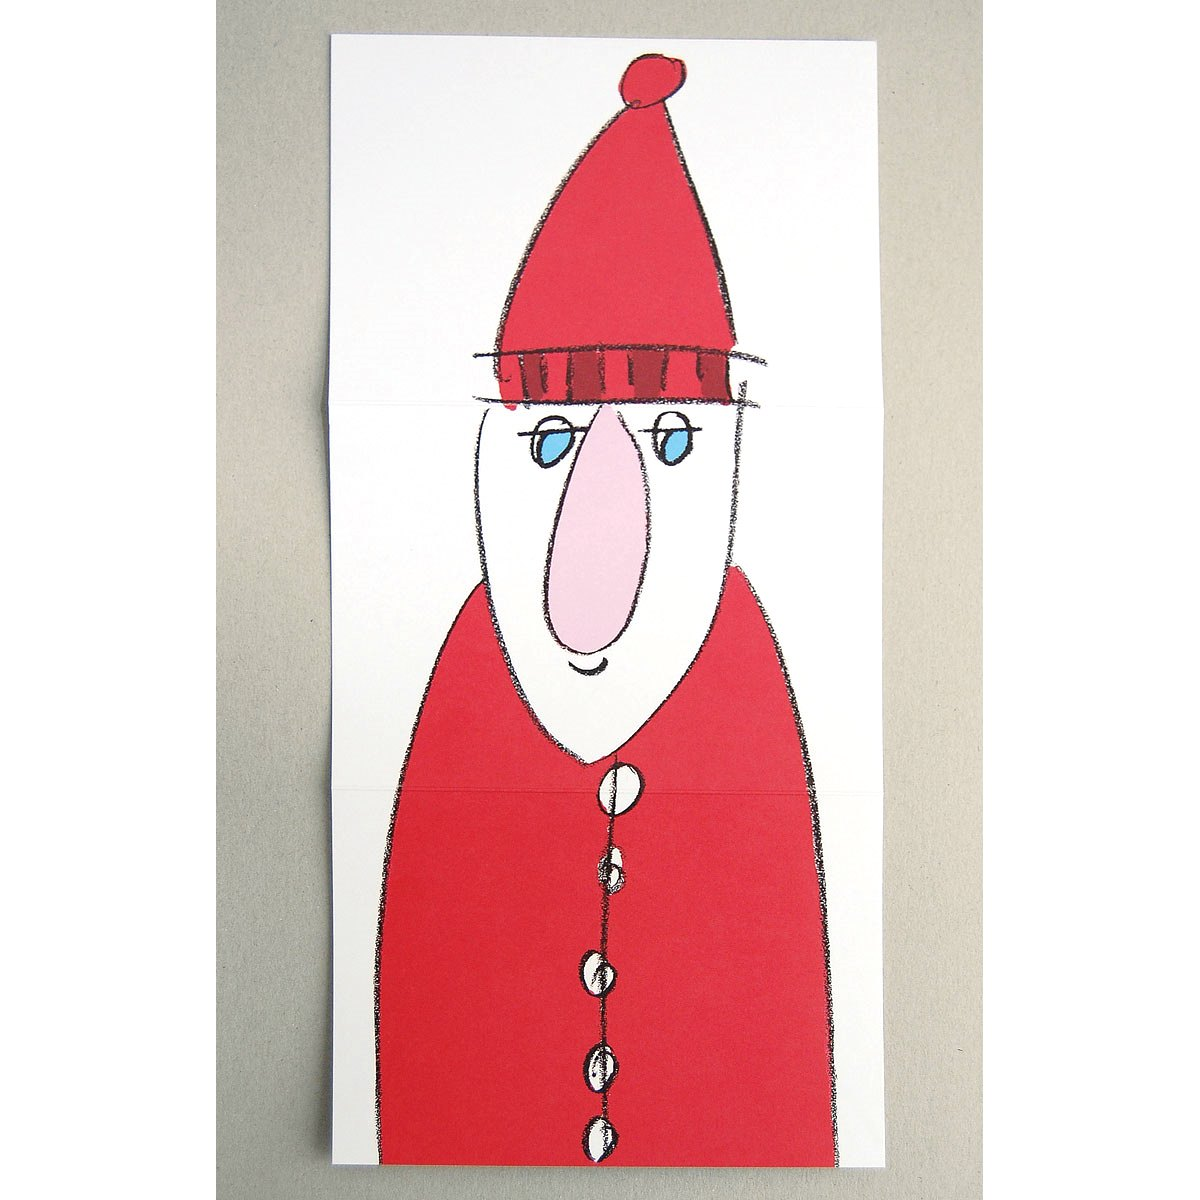 Cartoon Christmas Cards with interesting views